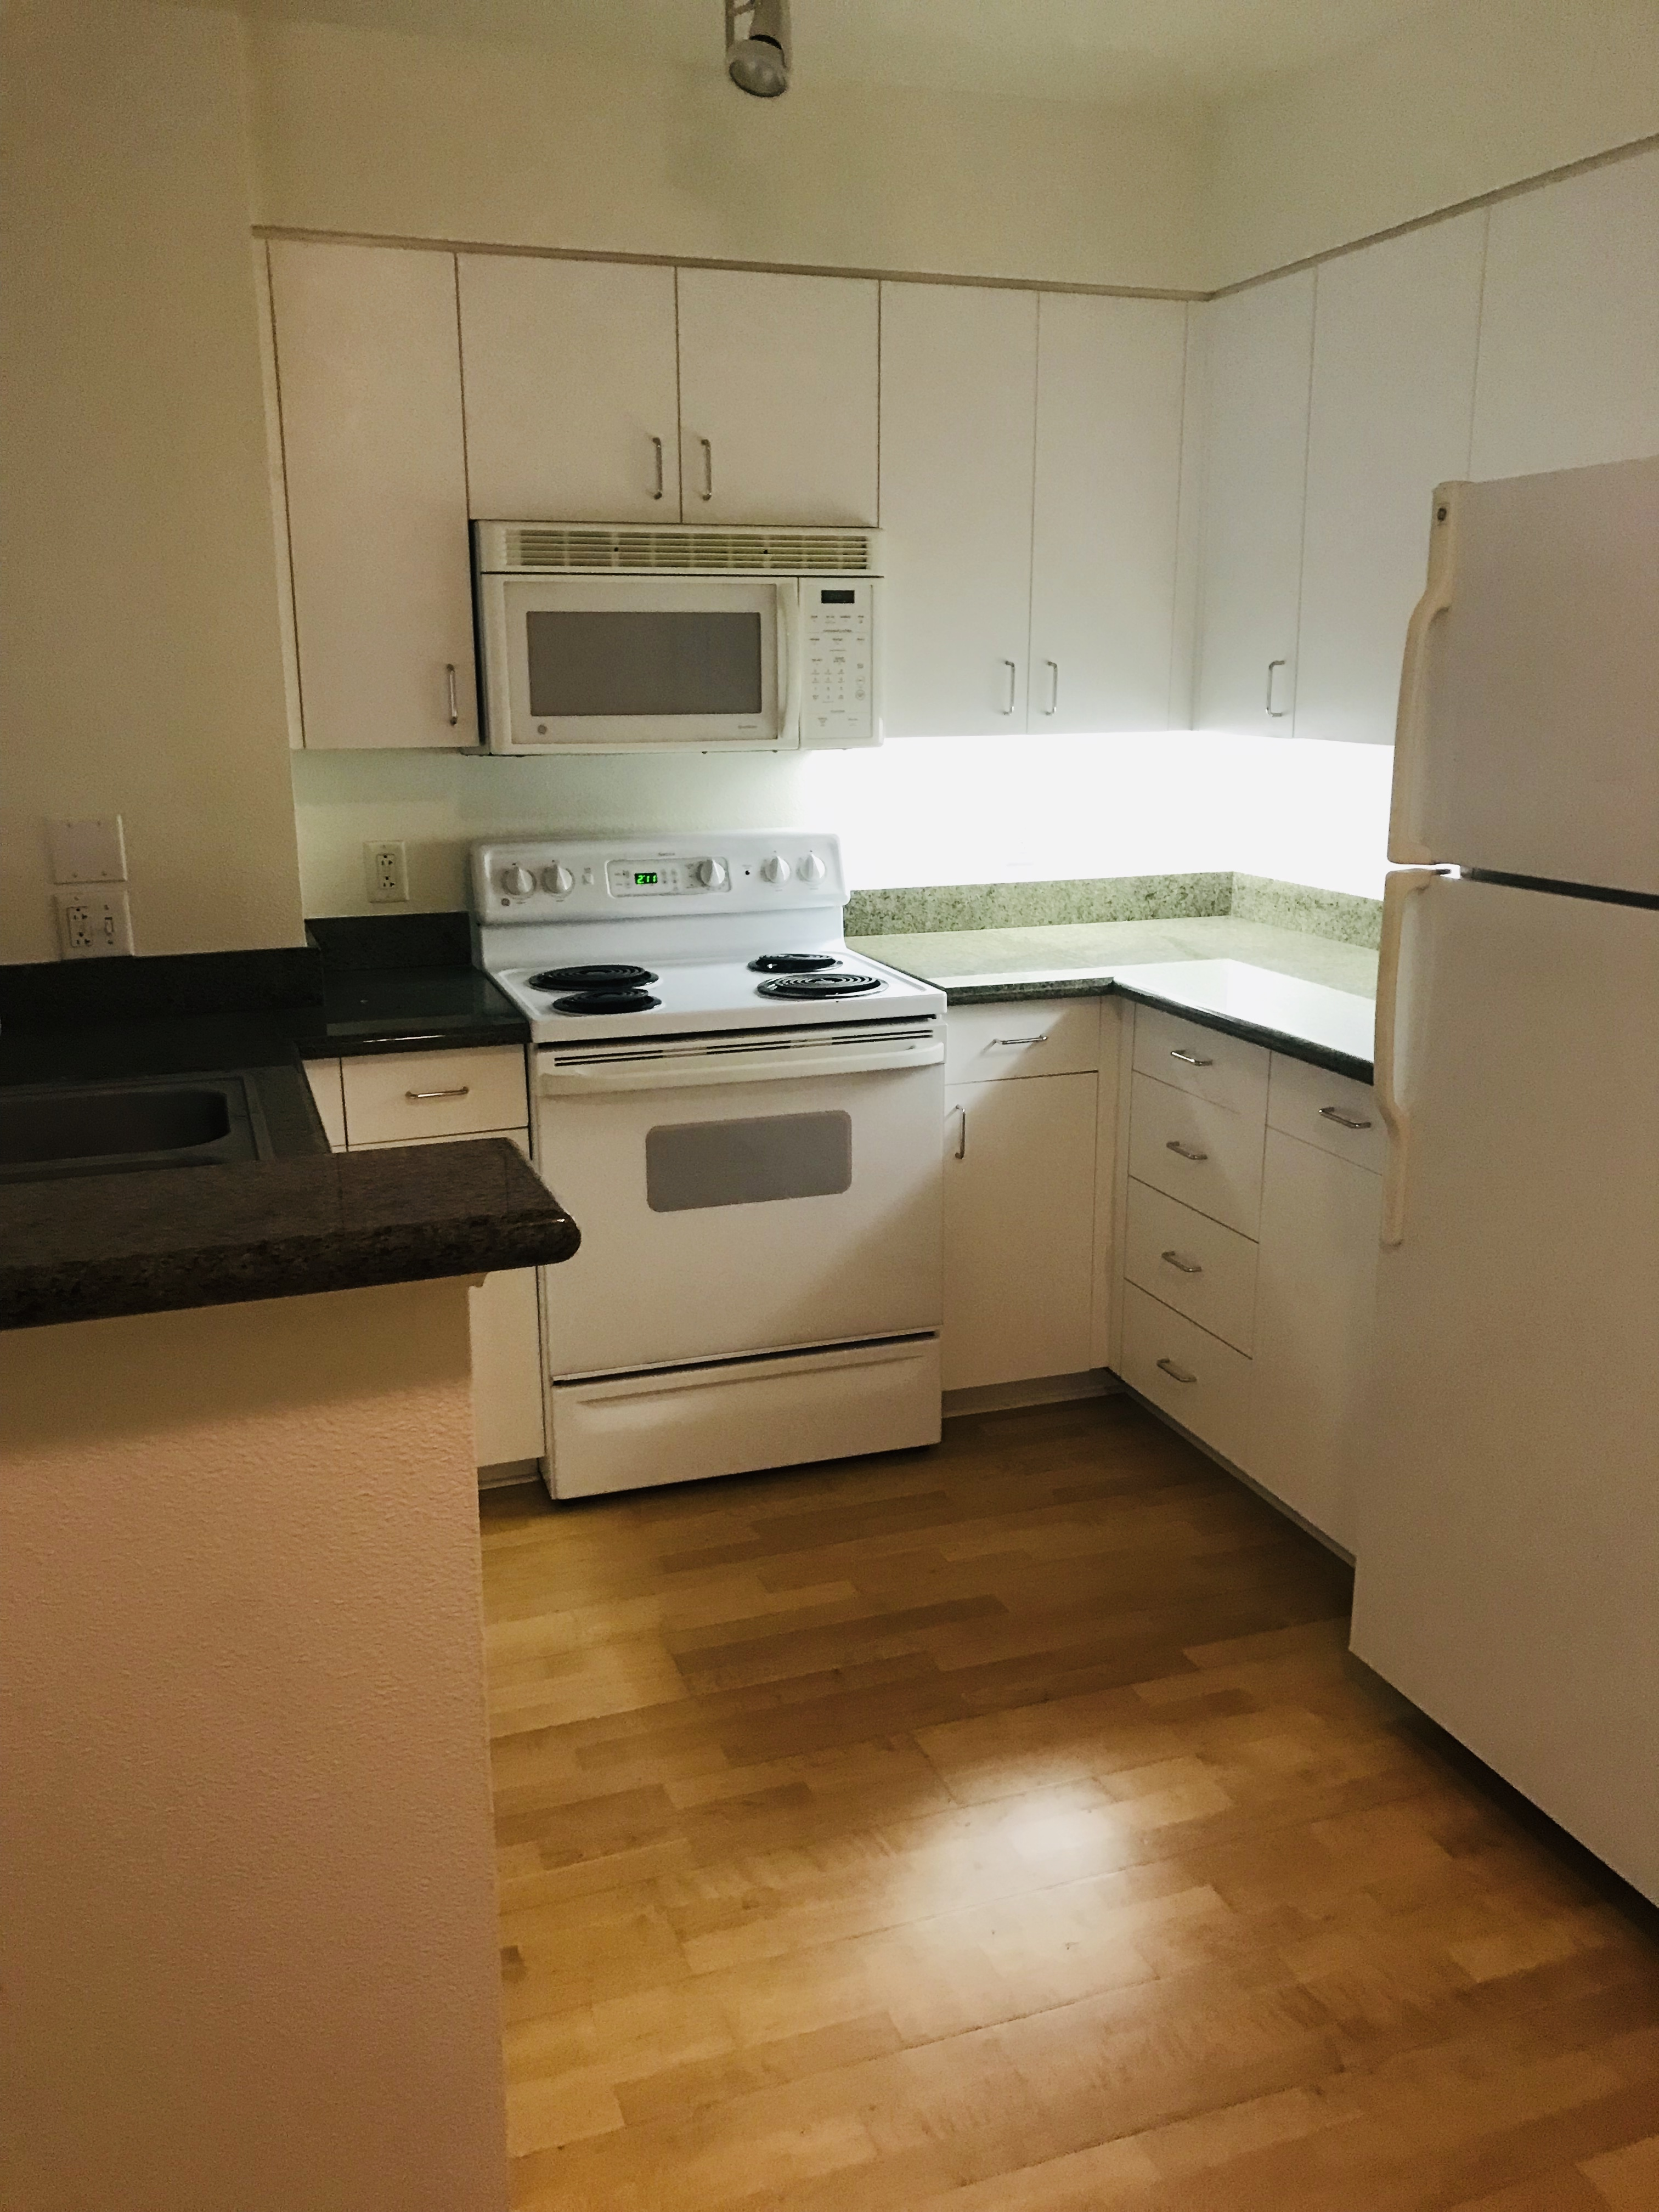 3981 Alemany Blvd, Unit 114, San Francisco | Rental ...